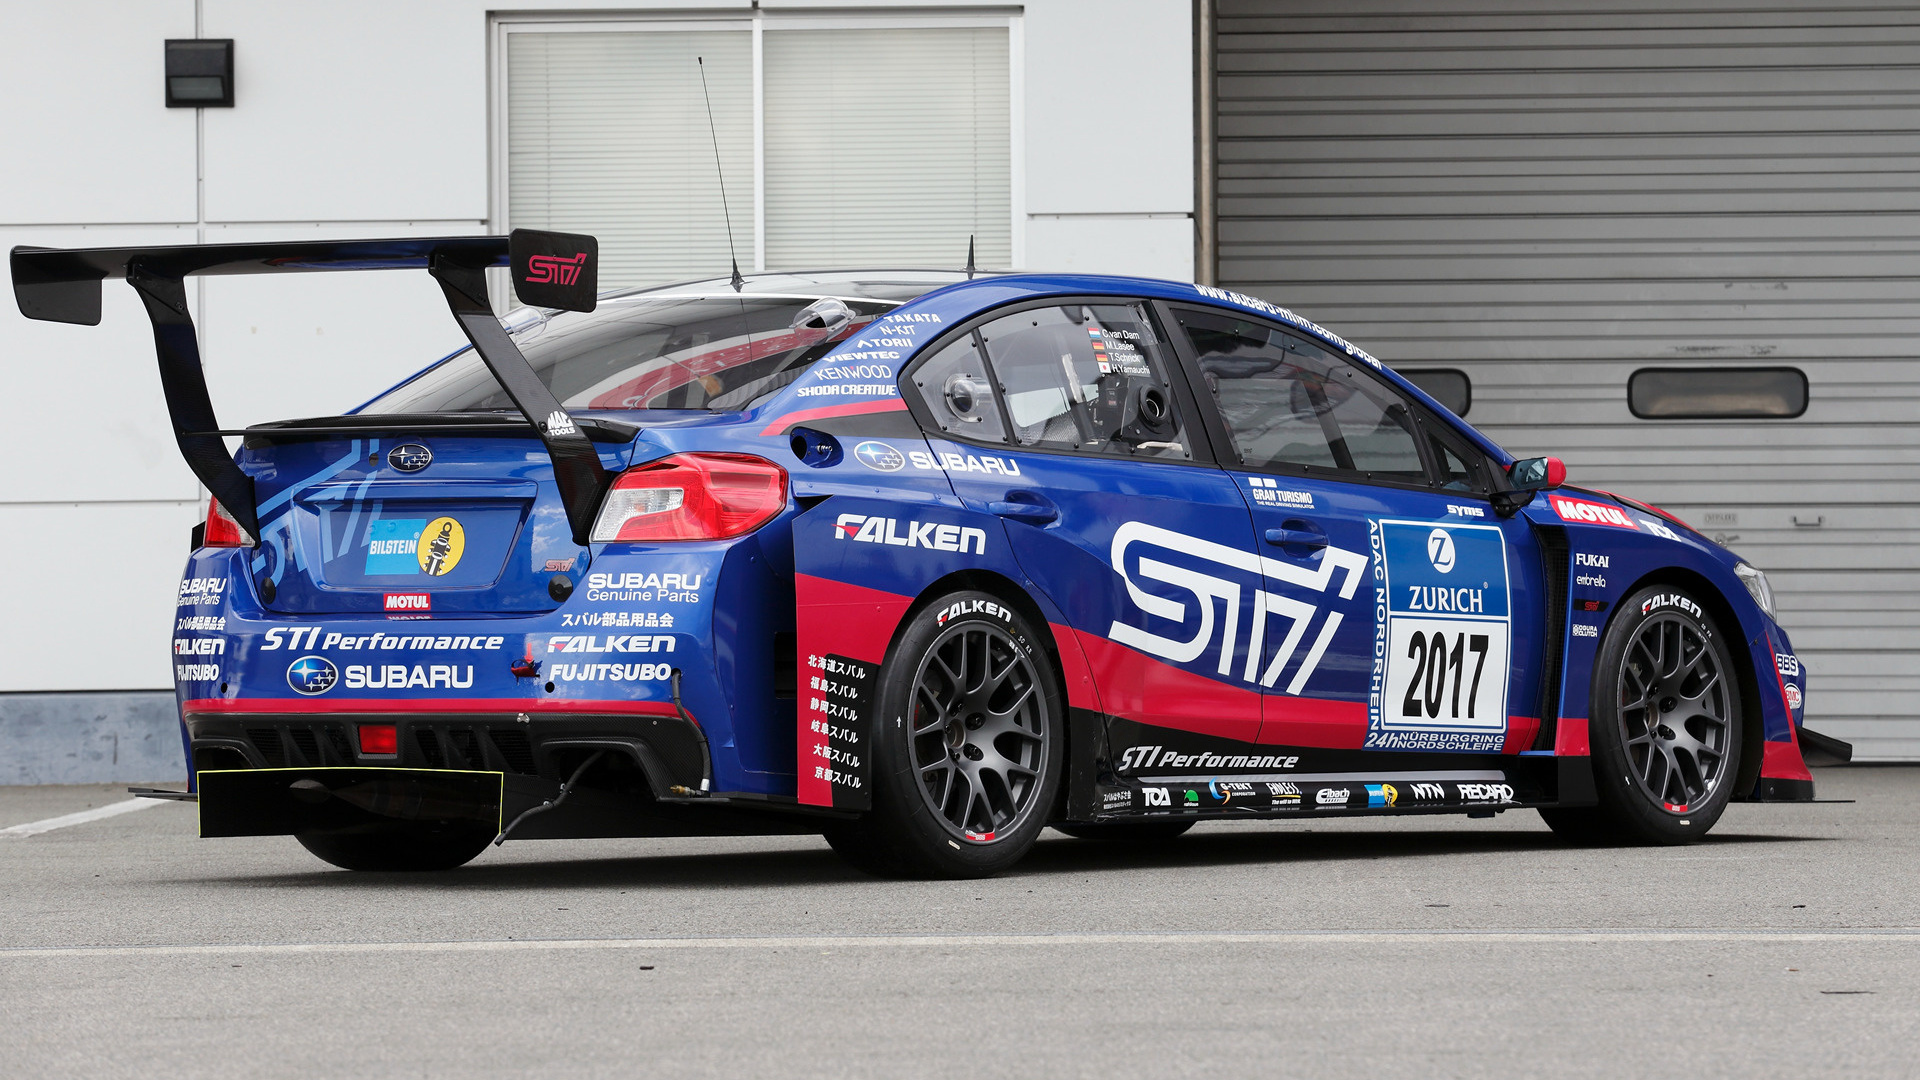 Subaru Wrx Sti Race Car 2017 Wallpapers And Hd Images Car Pixel